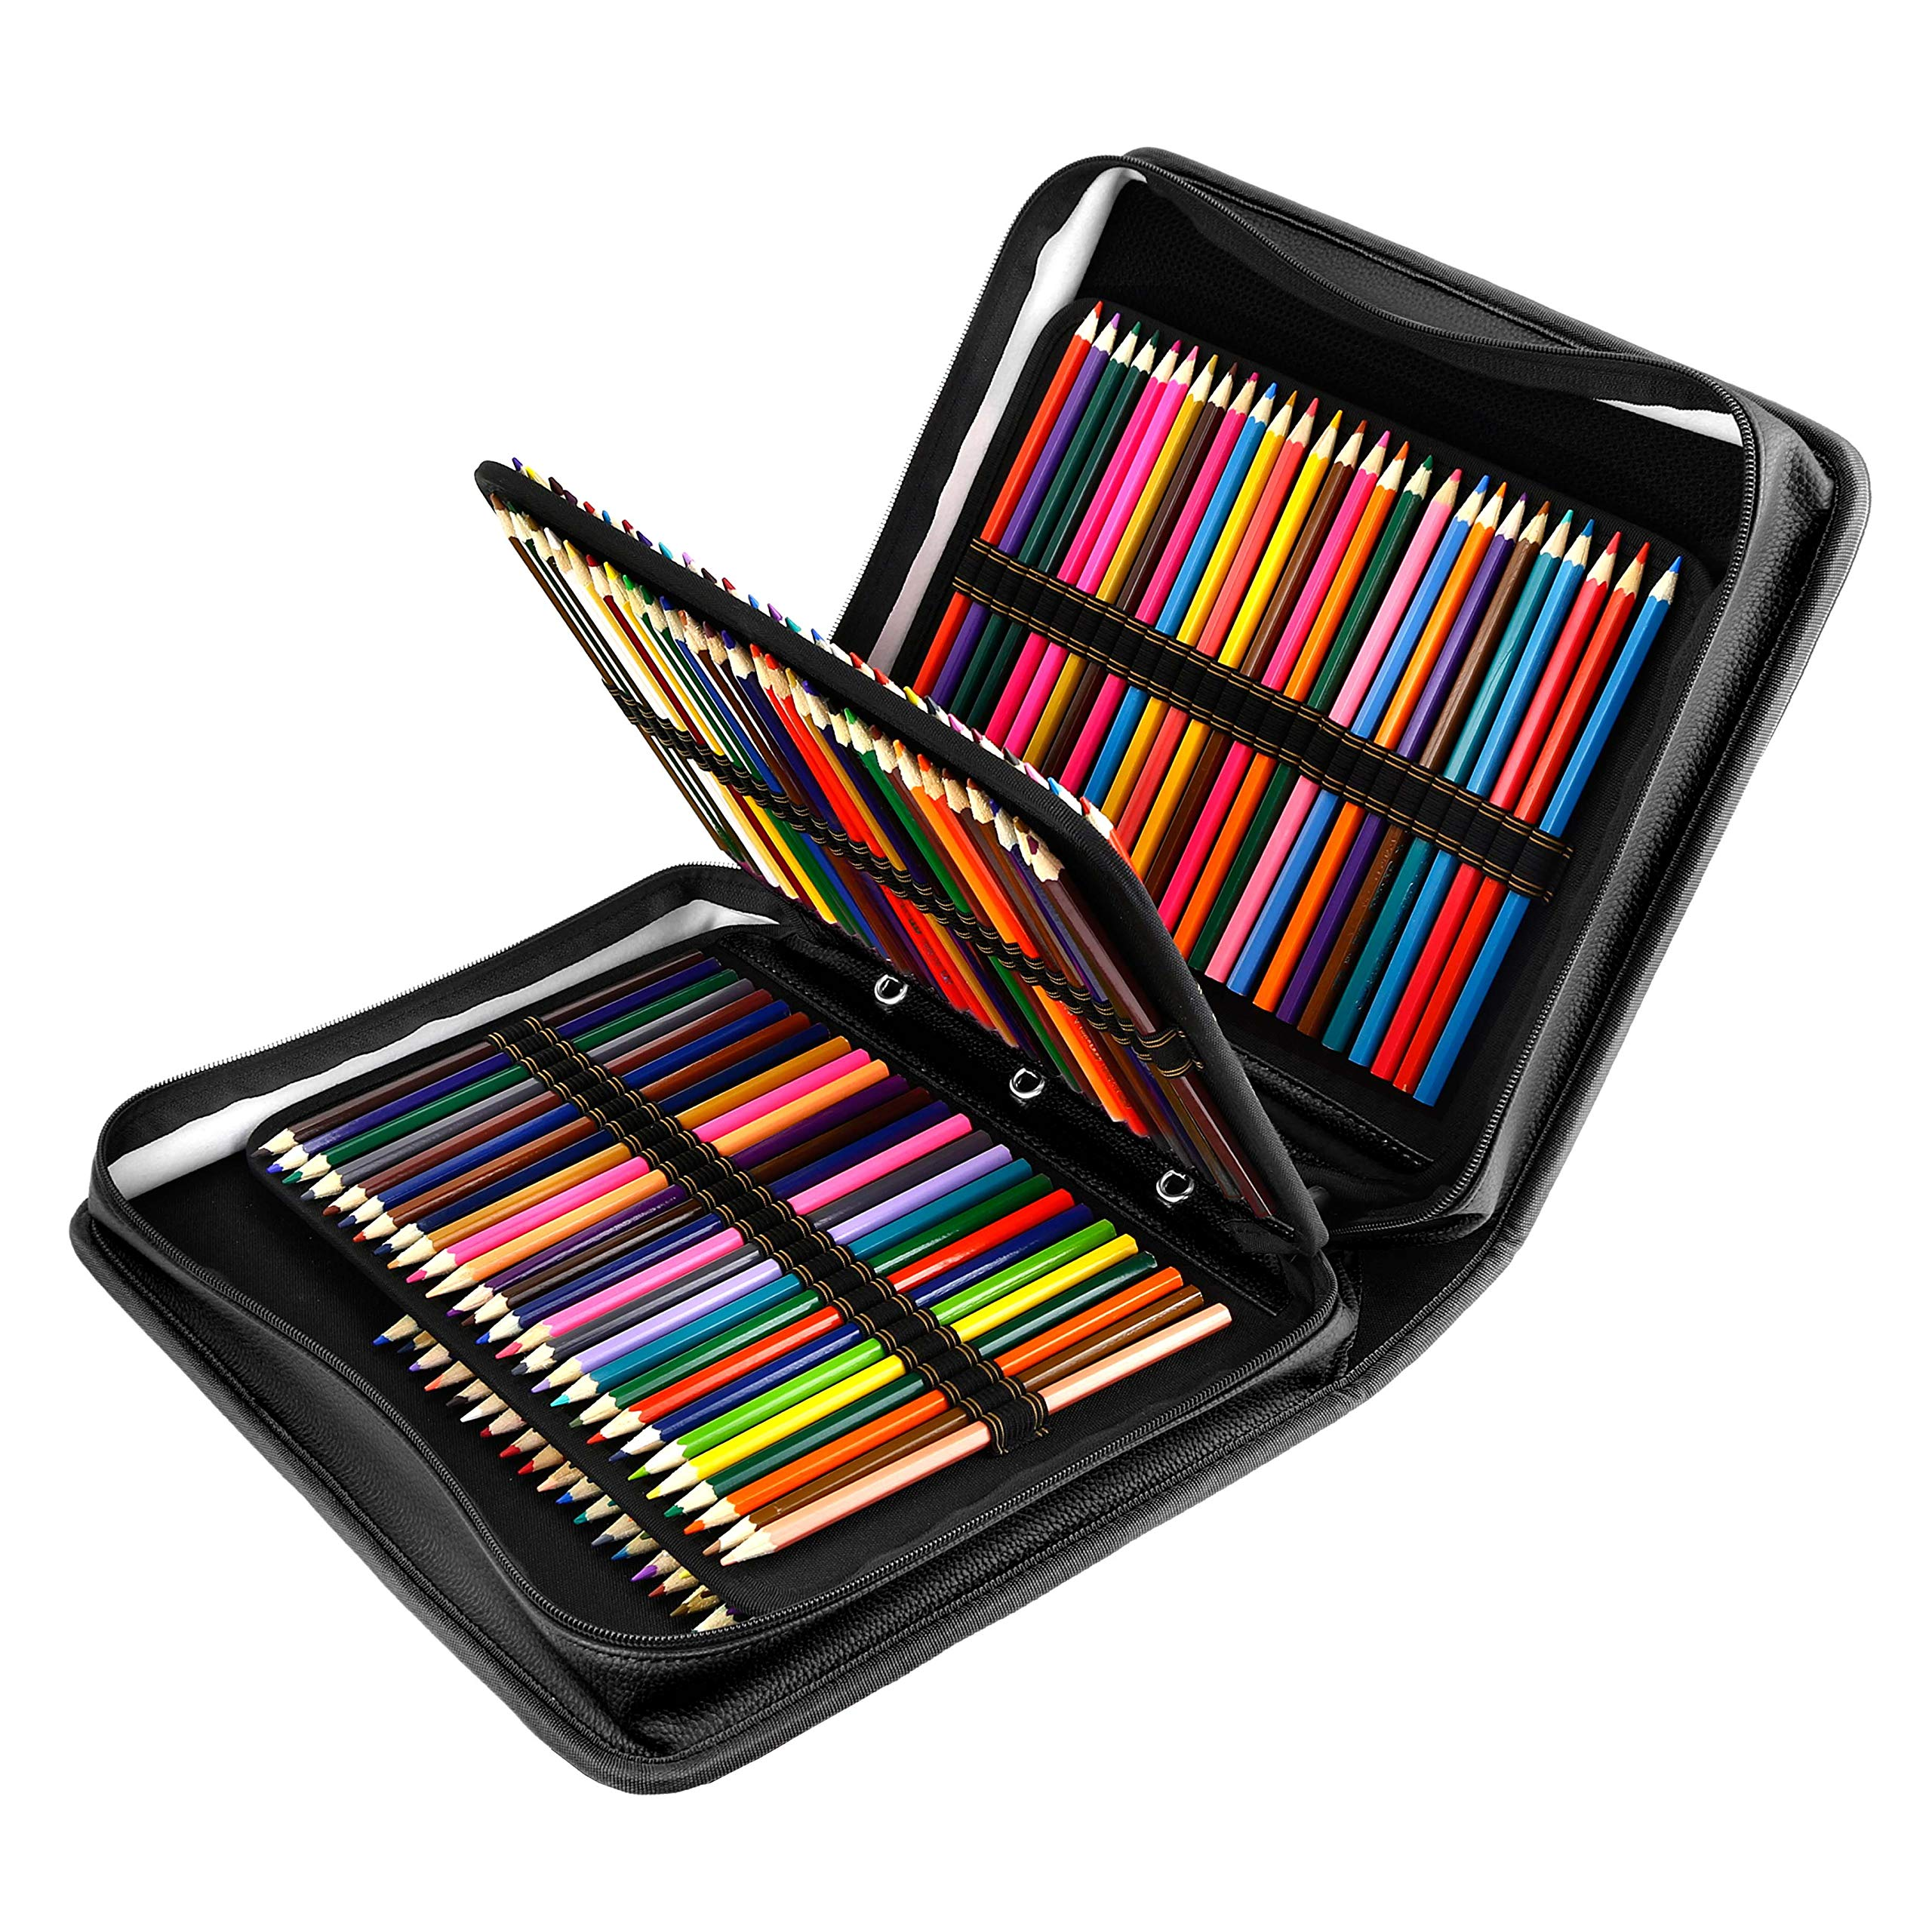 YOUSHARES 180 Slots PU Leather Colored Pencil Case - Large Capacity Carrying Case for Prismacolor Watercolor Pencils, Crayola Colored Pencils, Marco Pens, Gel Pens(Black) by YOUSHARES